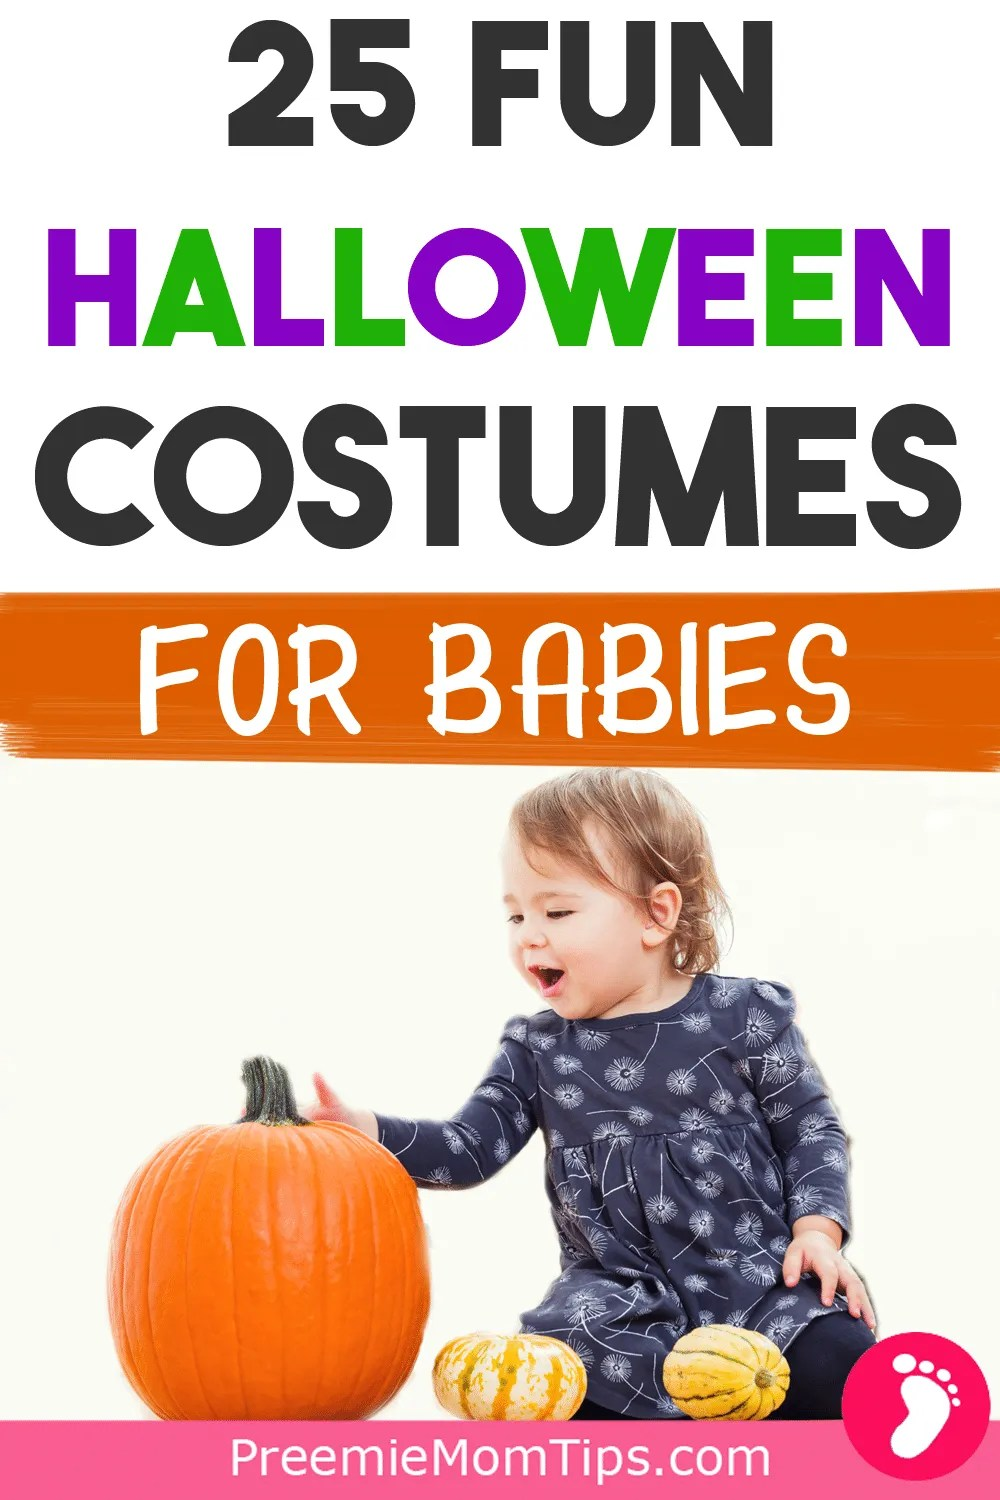 Get ready to start some Halloween family traditions on your baby's first Halloween with these fun, original, and classic Halloween costume ideas for babies